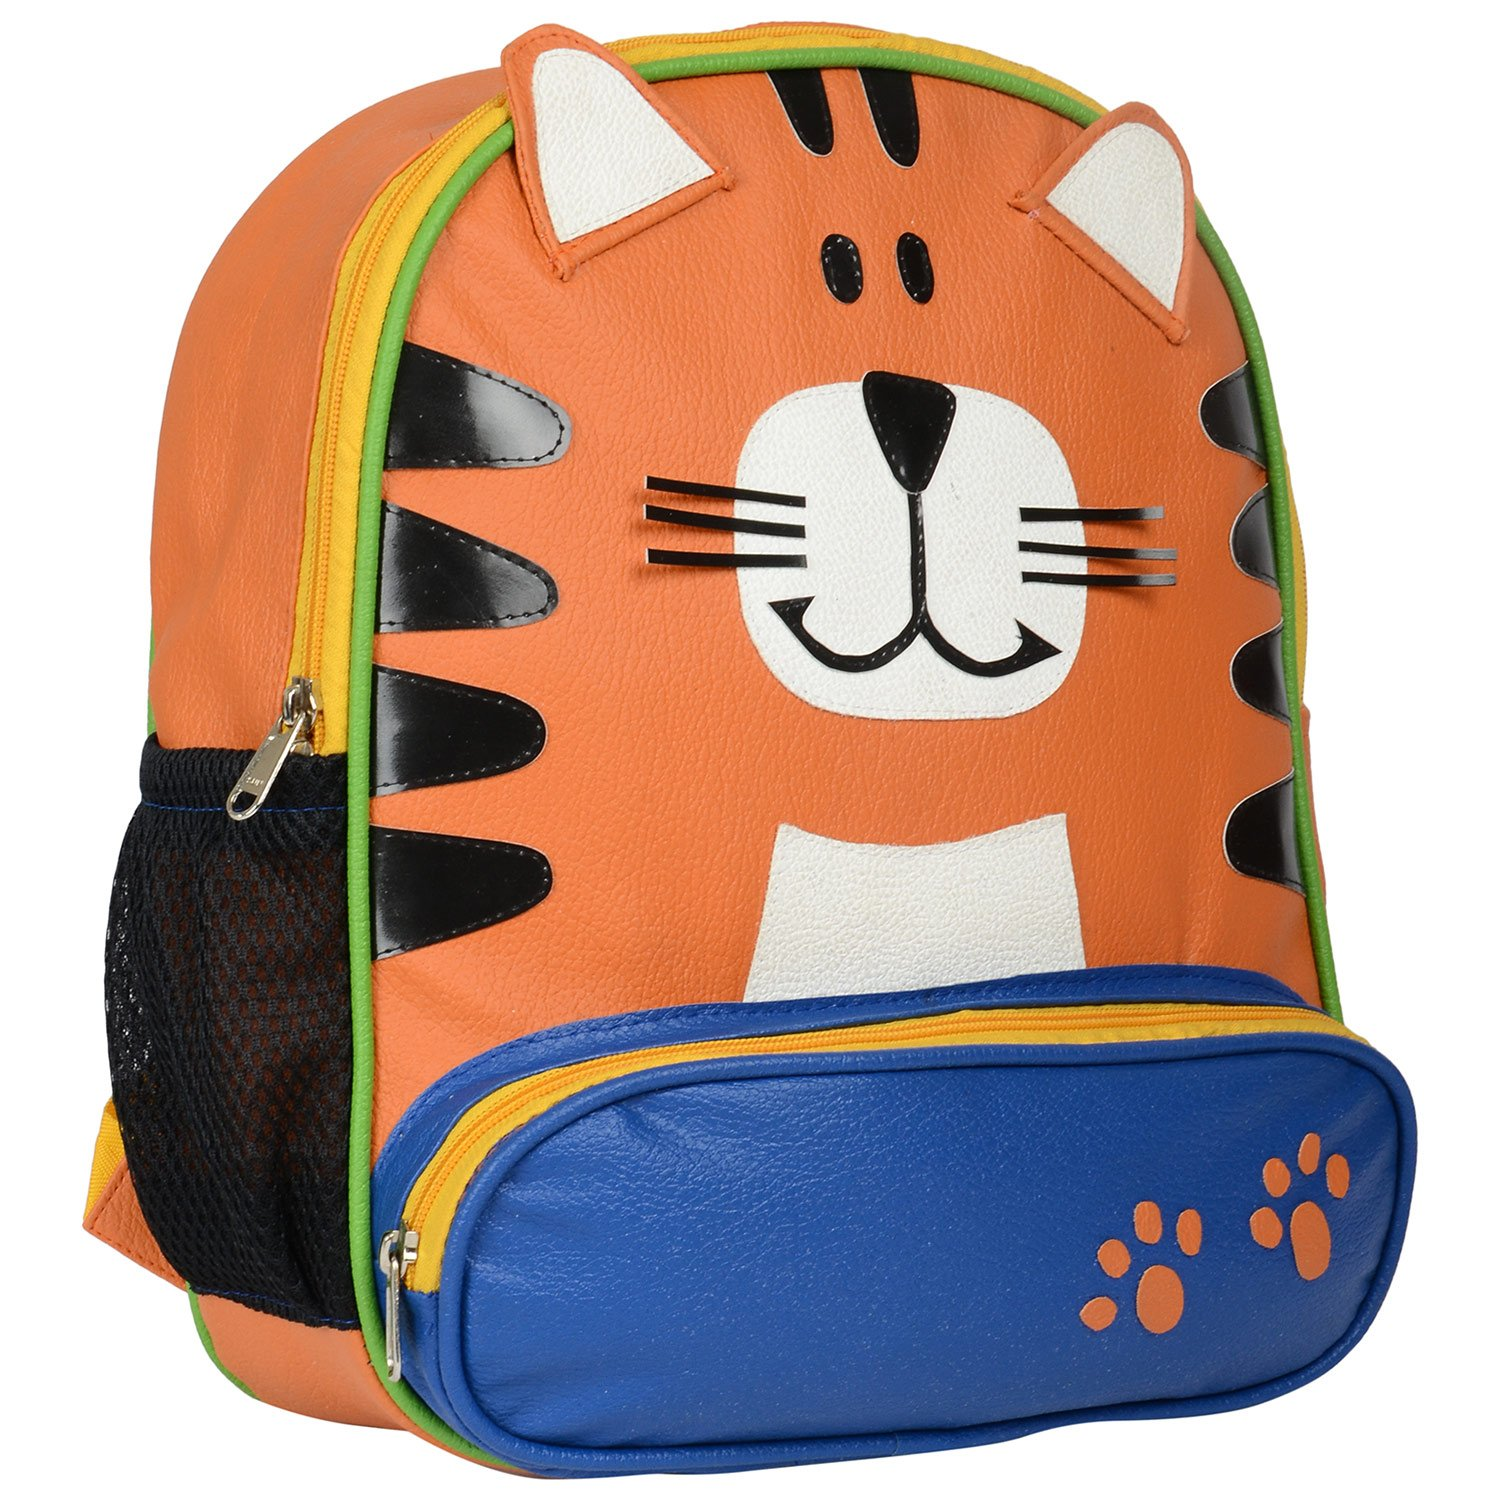 bless me creations bag tiger for kids amazon in toys u0026 games